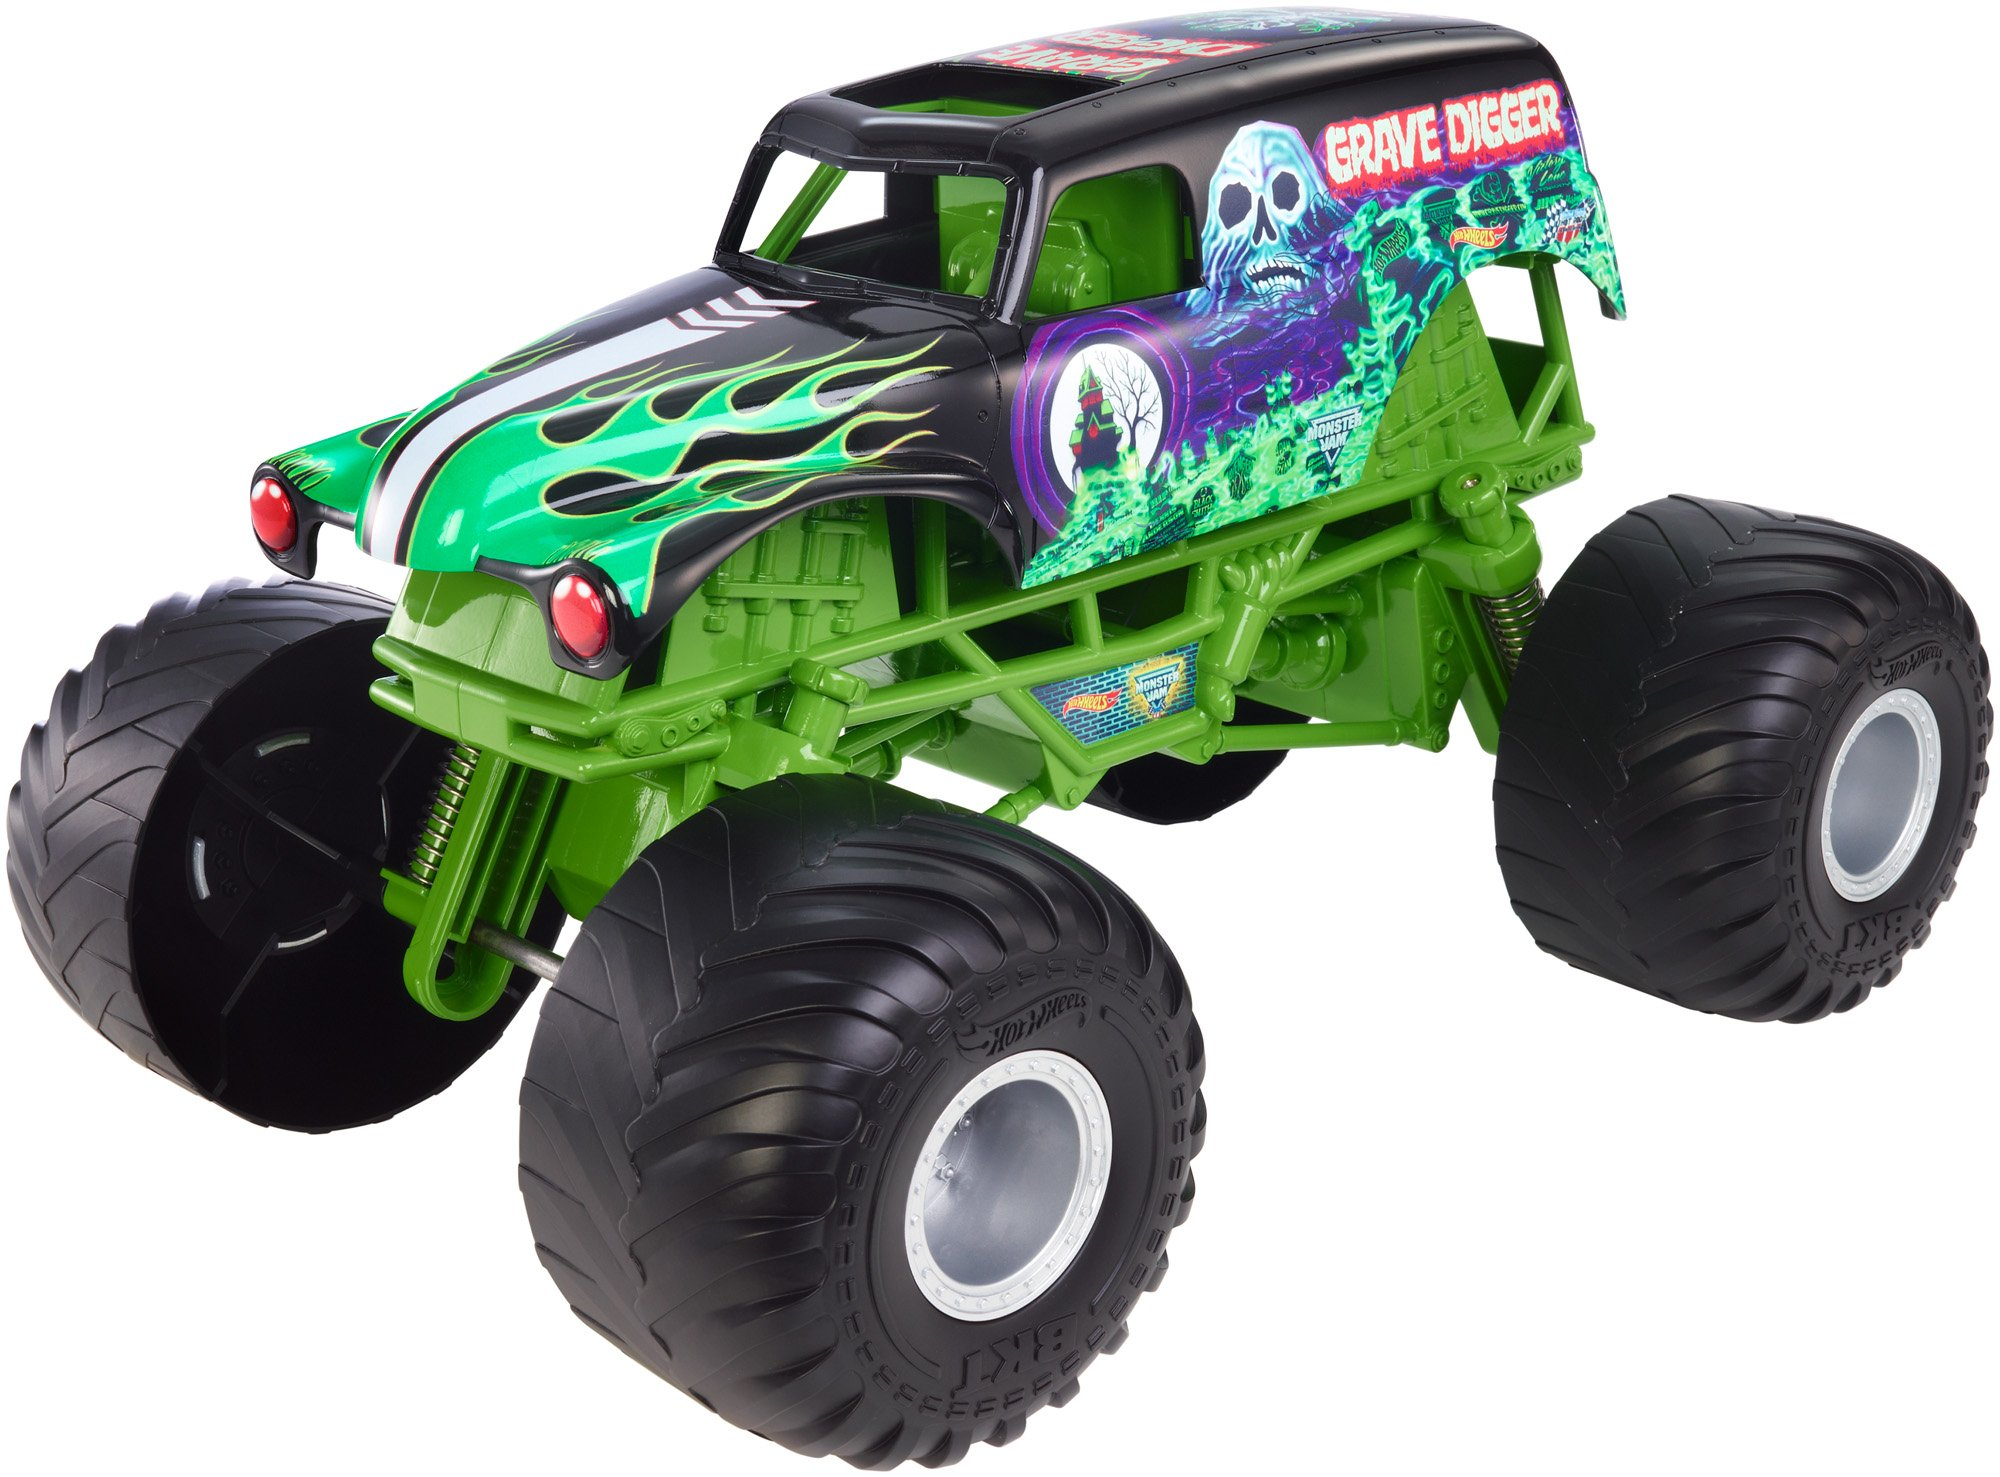 Hot Wheels Monster Jam Giant Grave Digger Truck by Hot Wheels (Image #1)